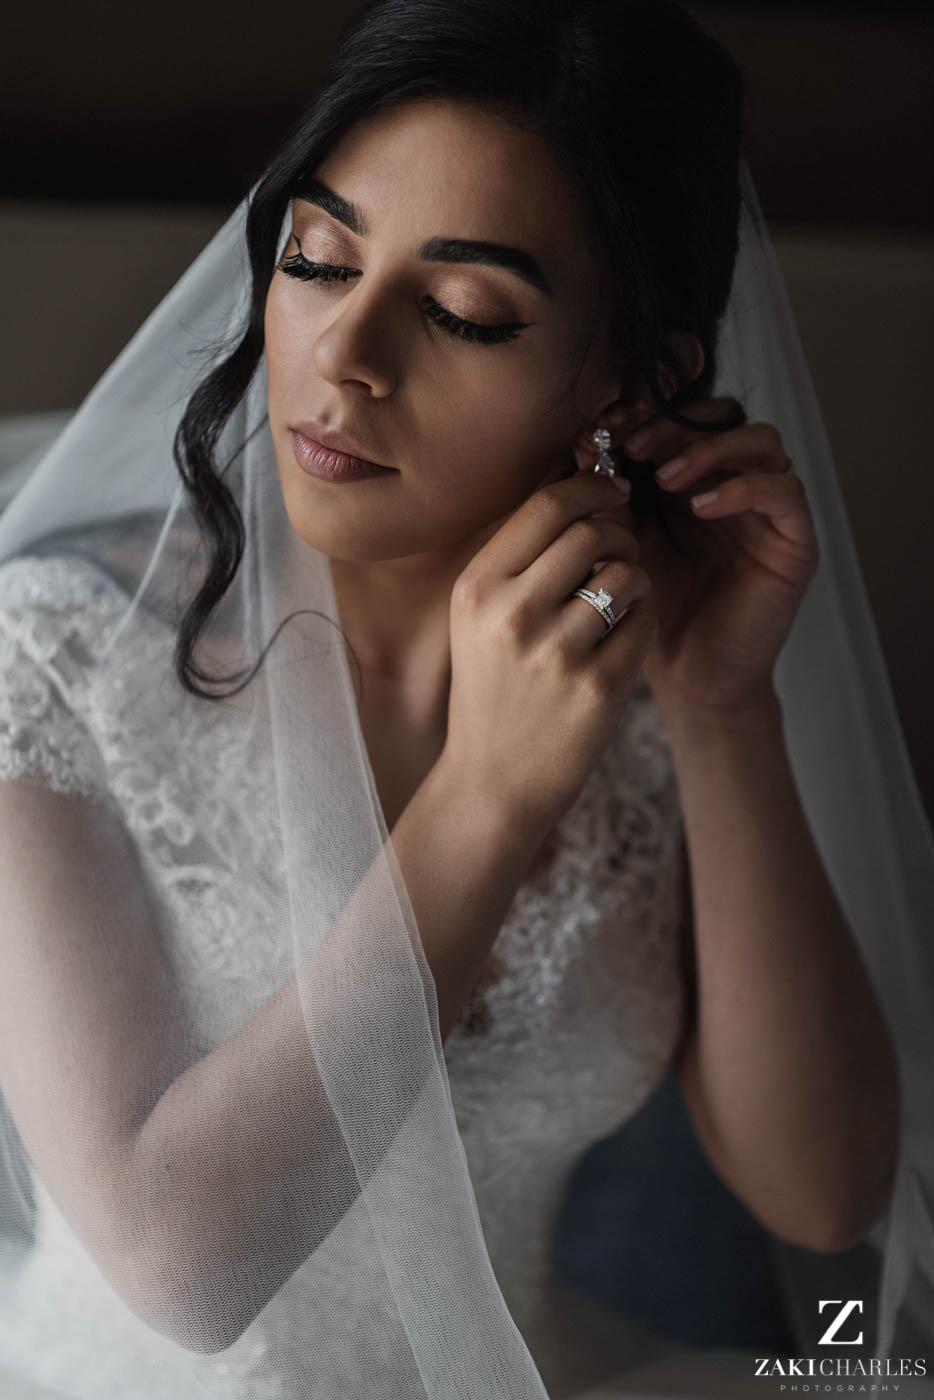 Natural light portrait of the bride at Marriott Hotel Regents Park 2